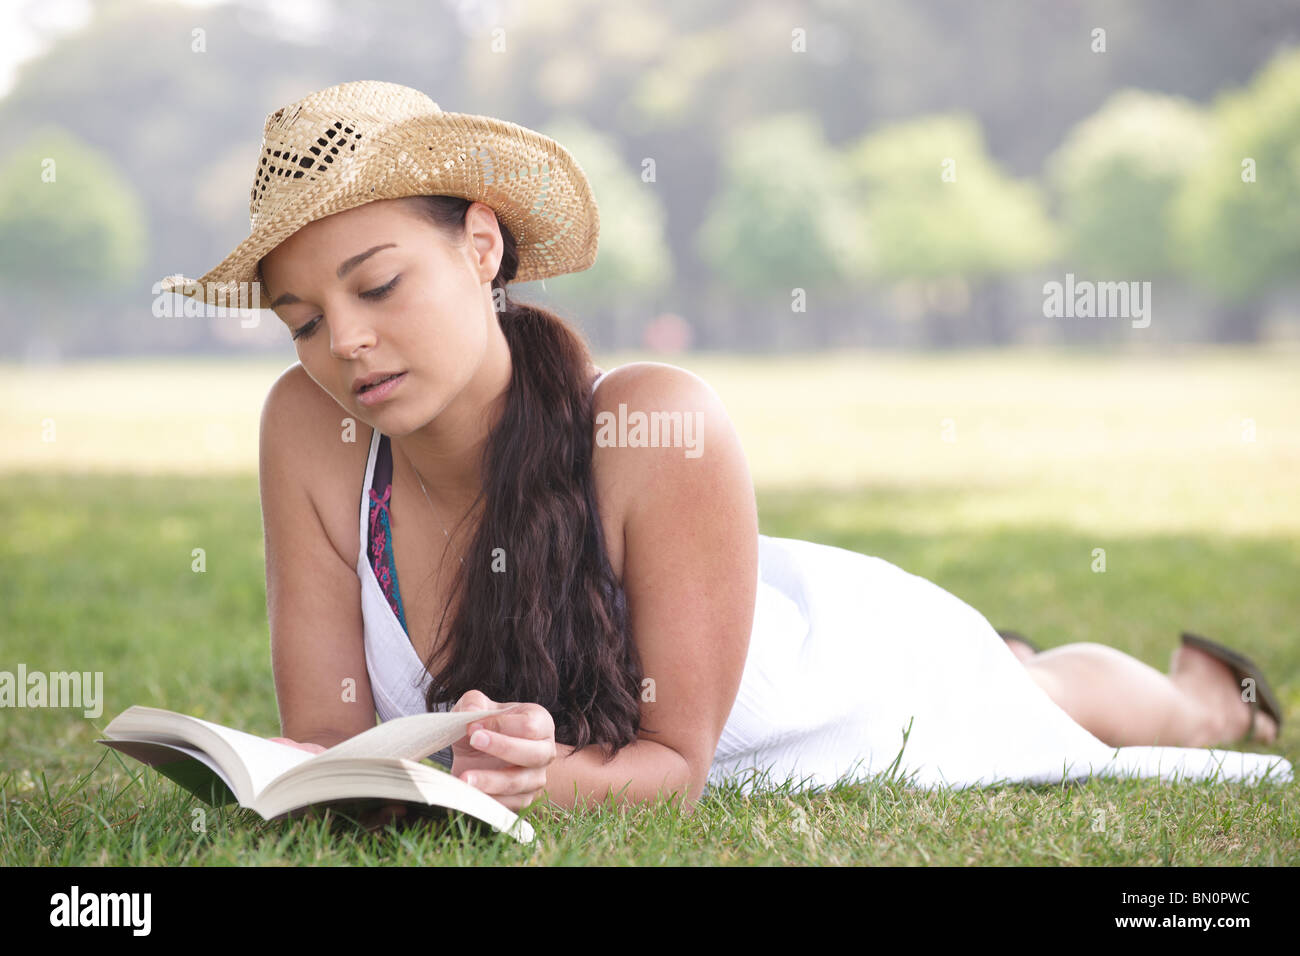 young attractive girl lying on grass while reading a book - Stock Image